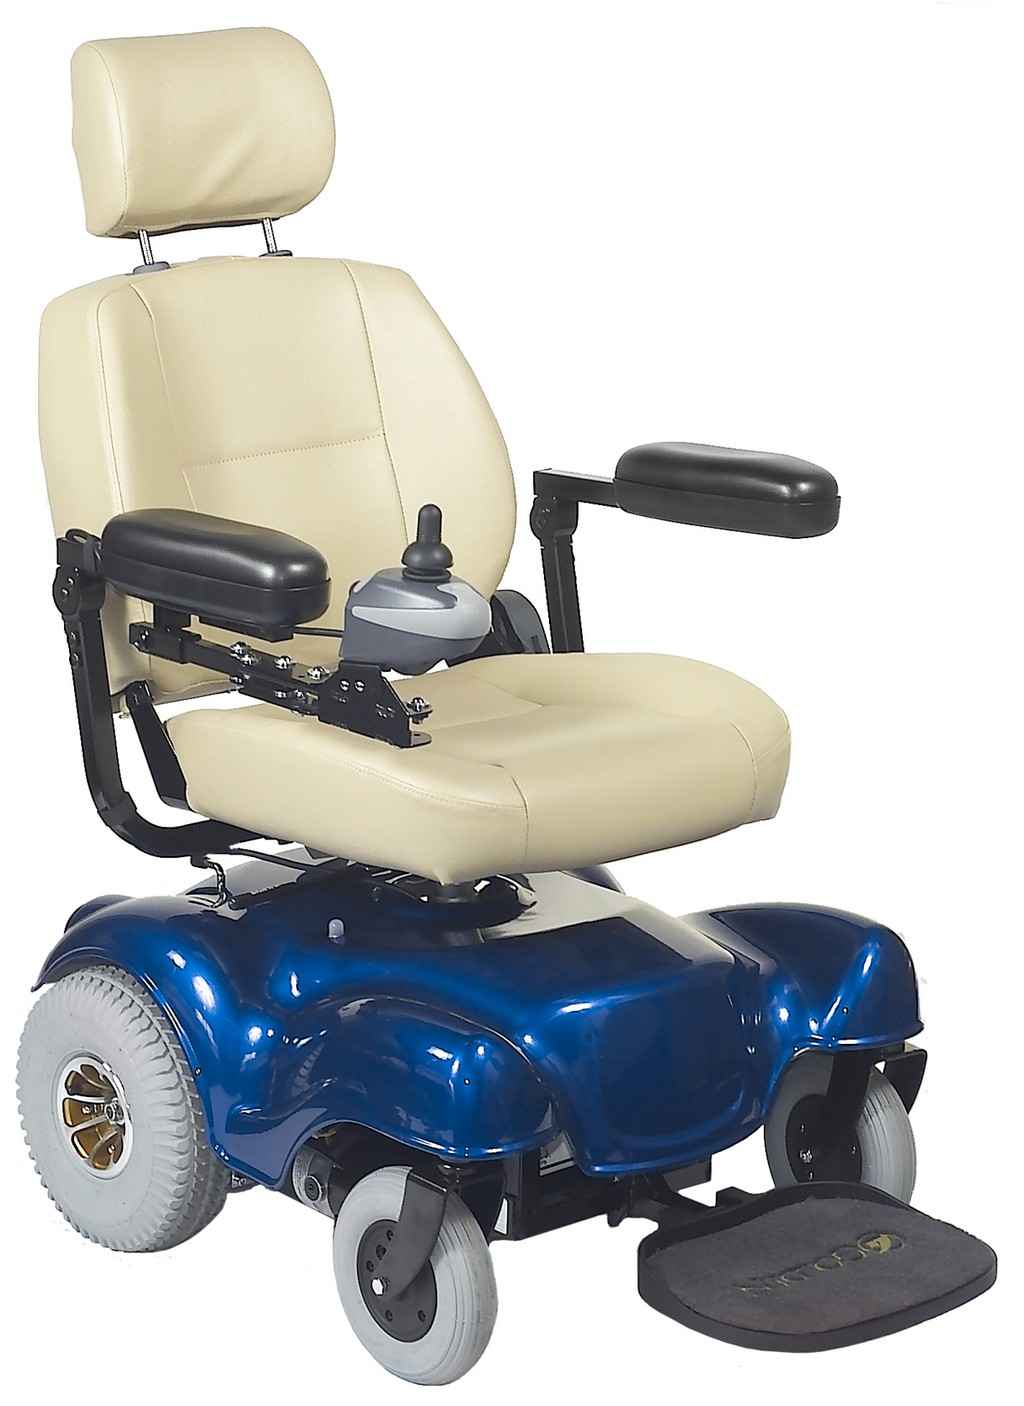 quickie electric wheelchair, disposing of power wheelchairs, batteries power wheel chairs, mini jazzy power wheelchair parts